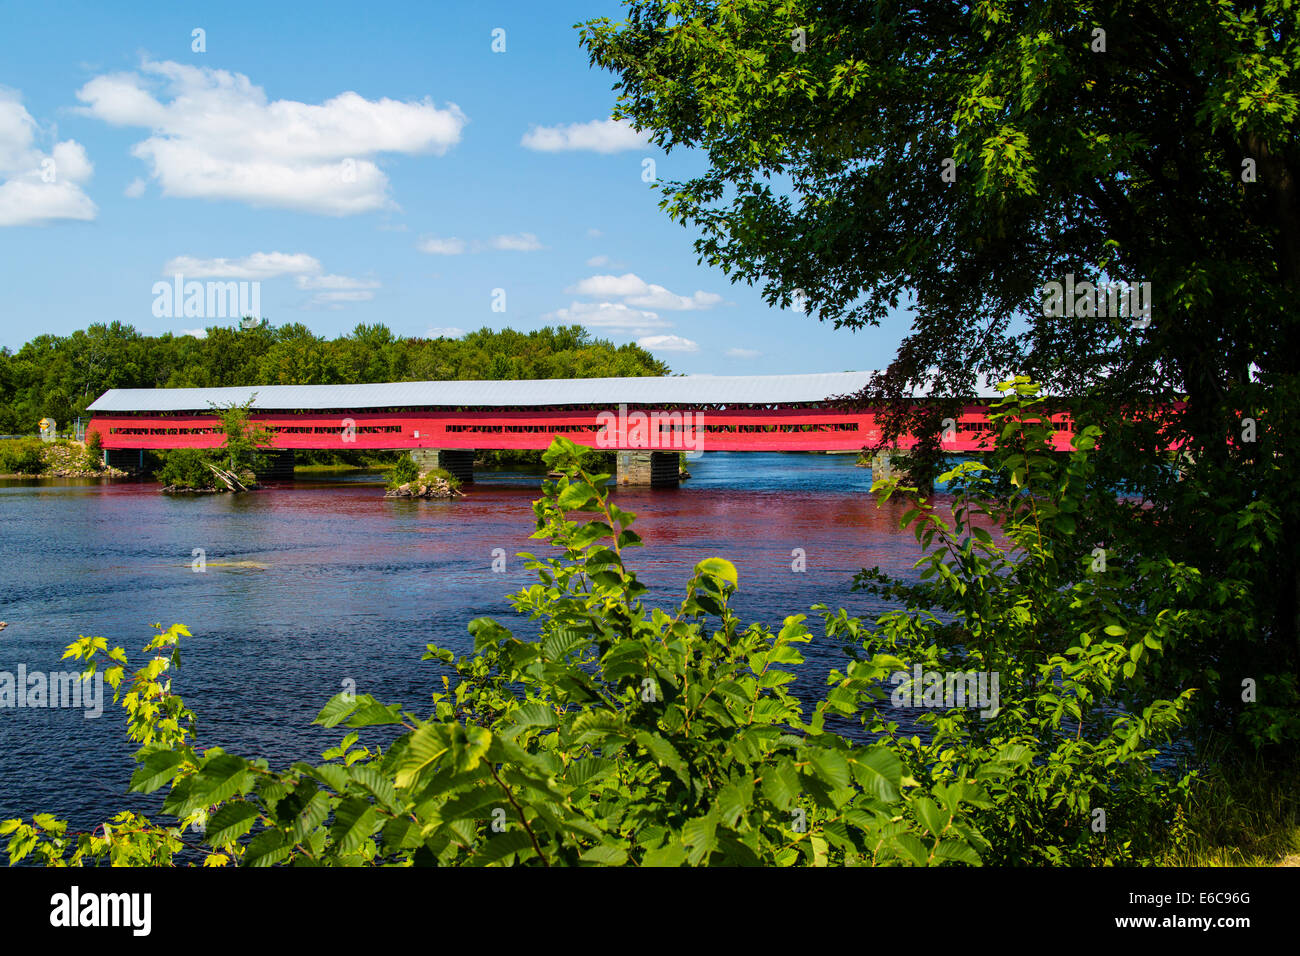 Covered Bridge over the River Coulonge at Mansfield-Et-Pontefract Quebec Canada - Stock Image